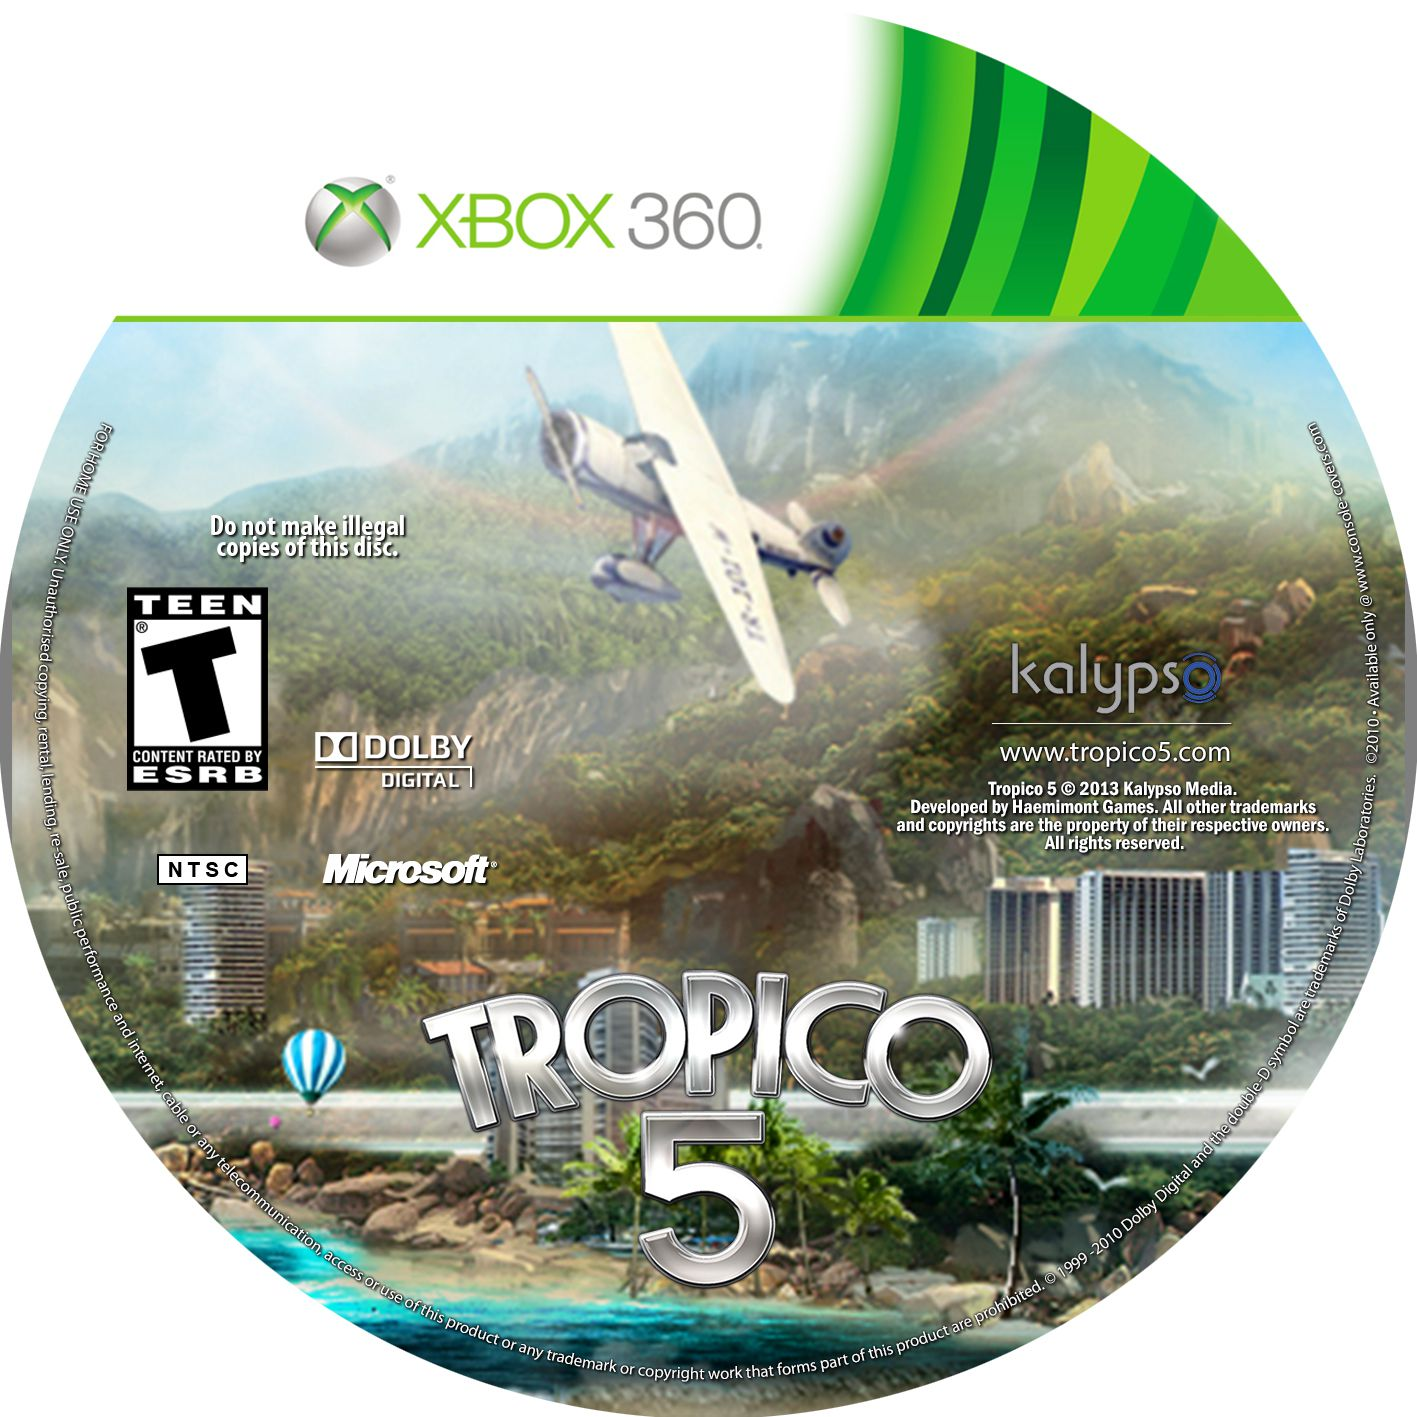 Label Tropico 5 Xbox 360